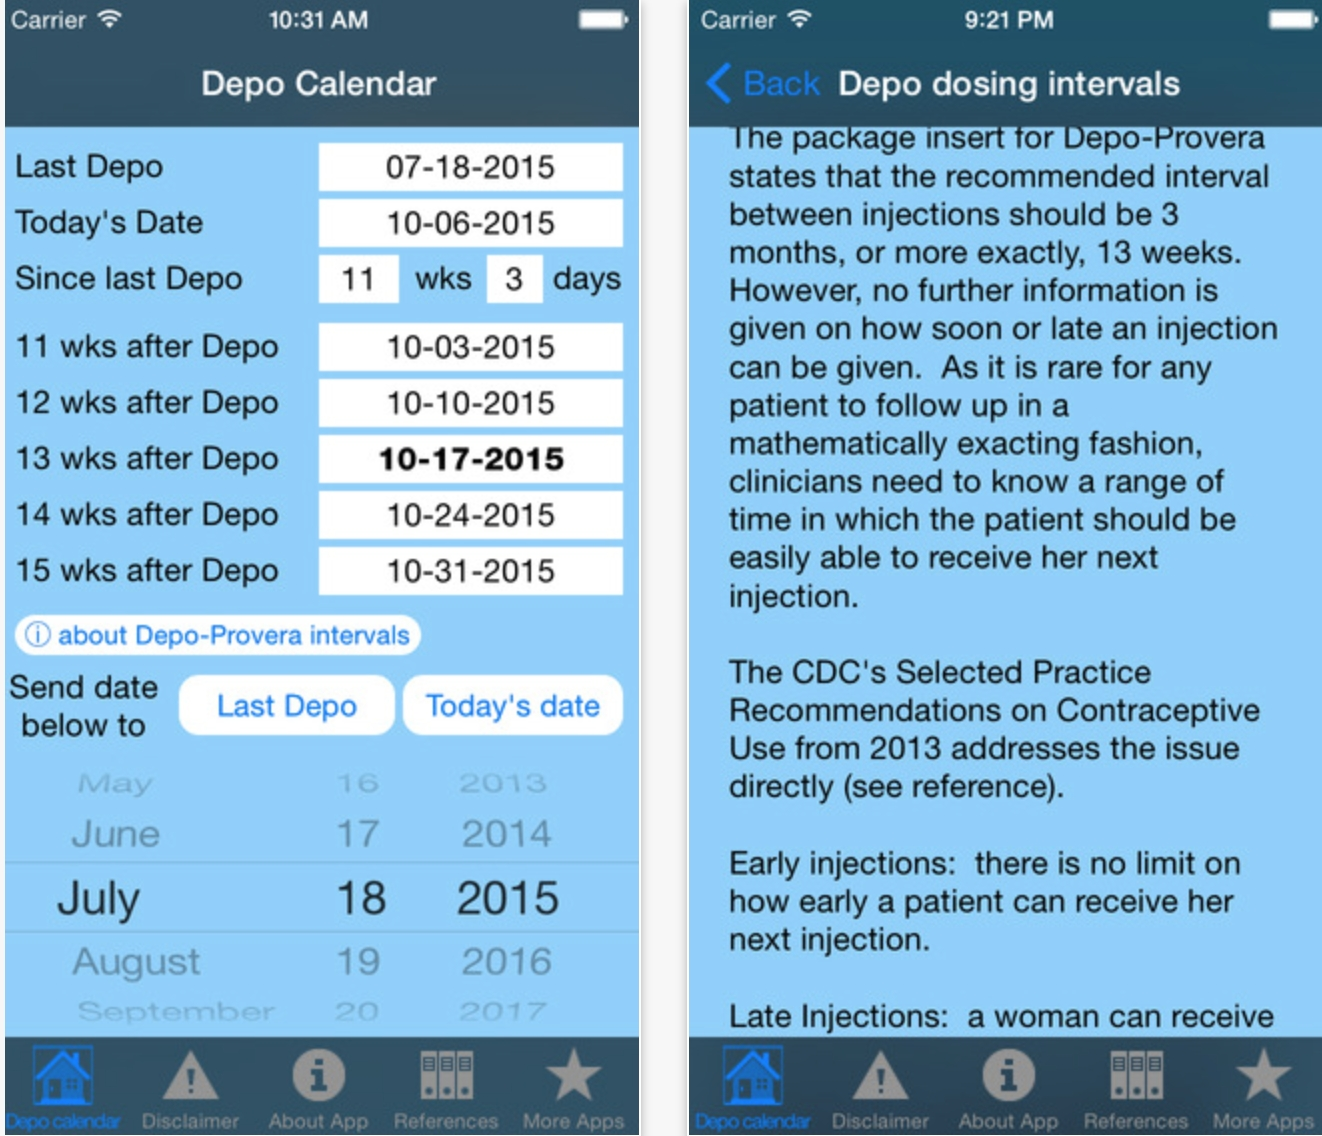 Depo Calendar App Could Significantly Improve Contraception  When To Get Next Depo Chart